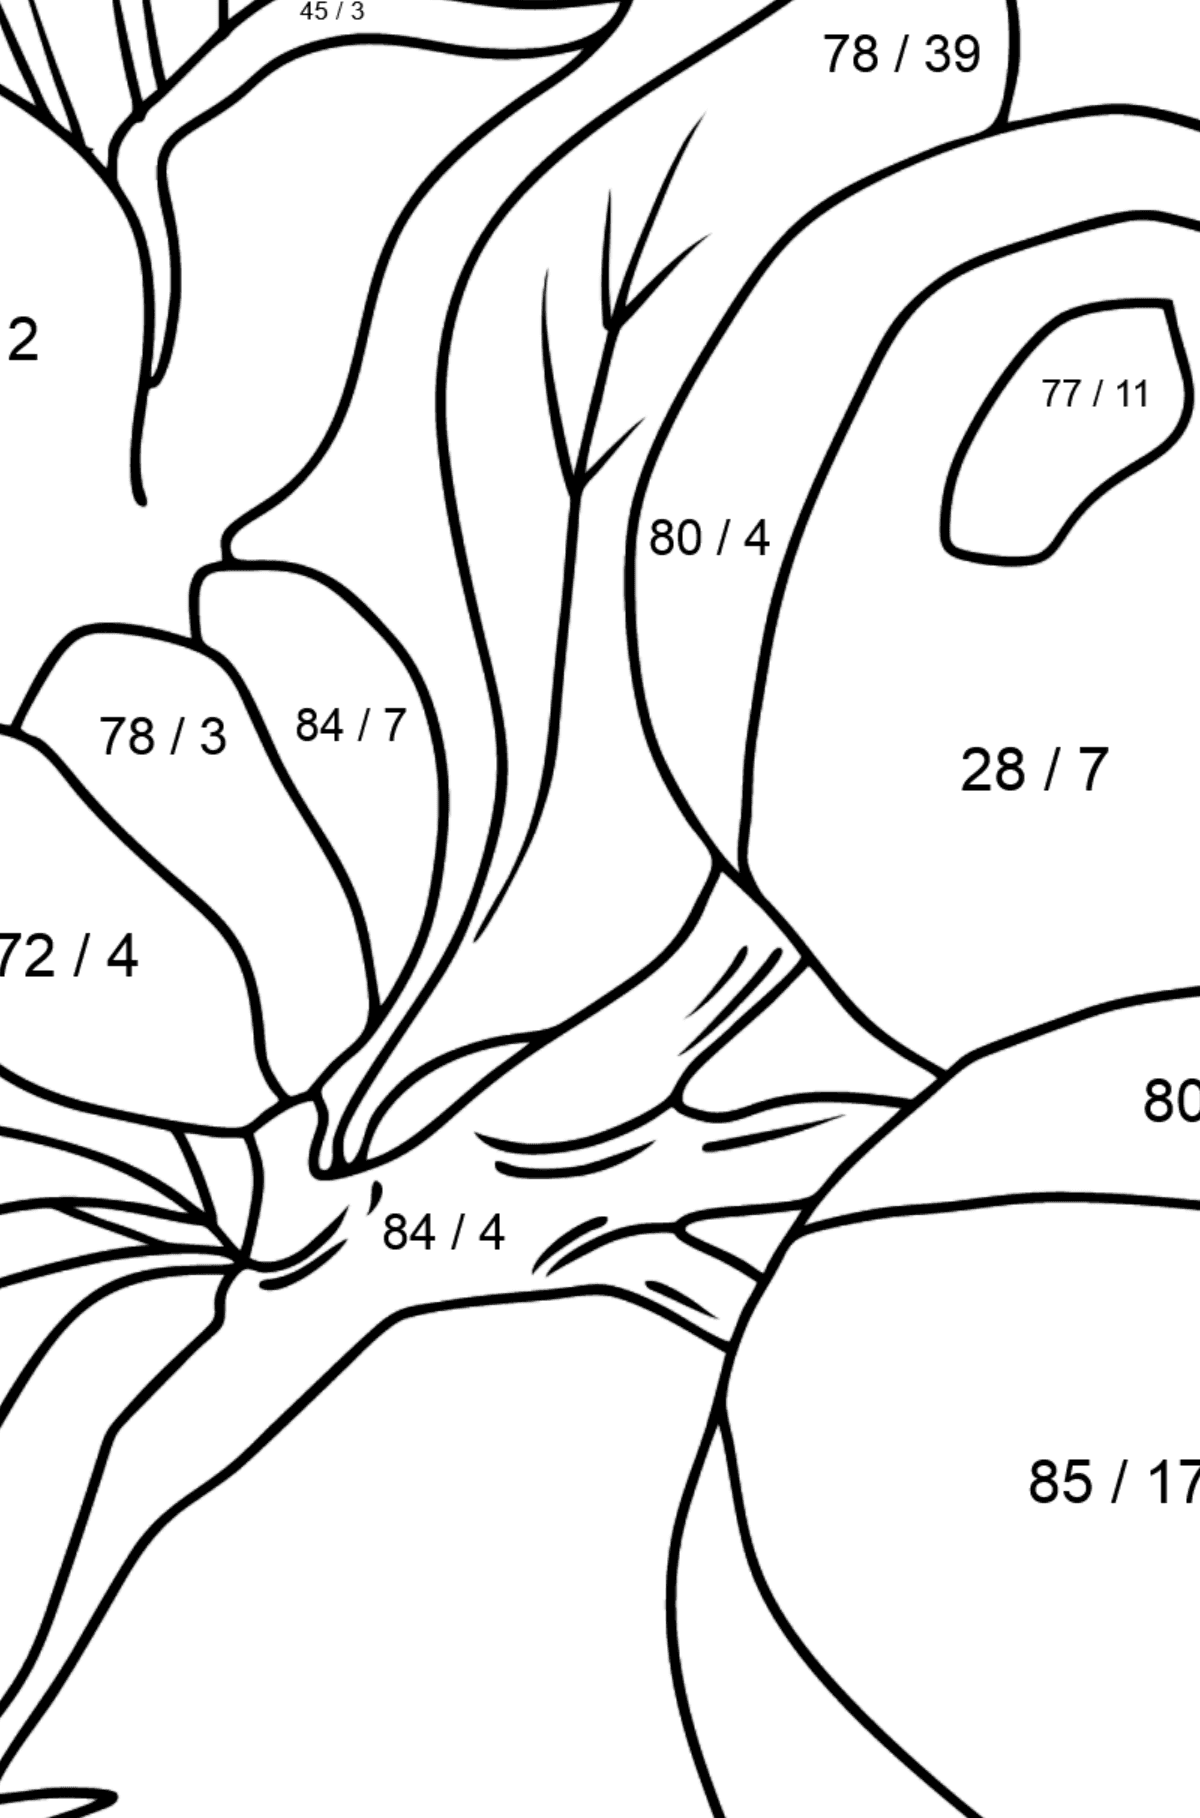 Coloring Page - flowers and fruits - Math Coloring - Division for Kids